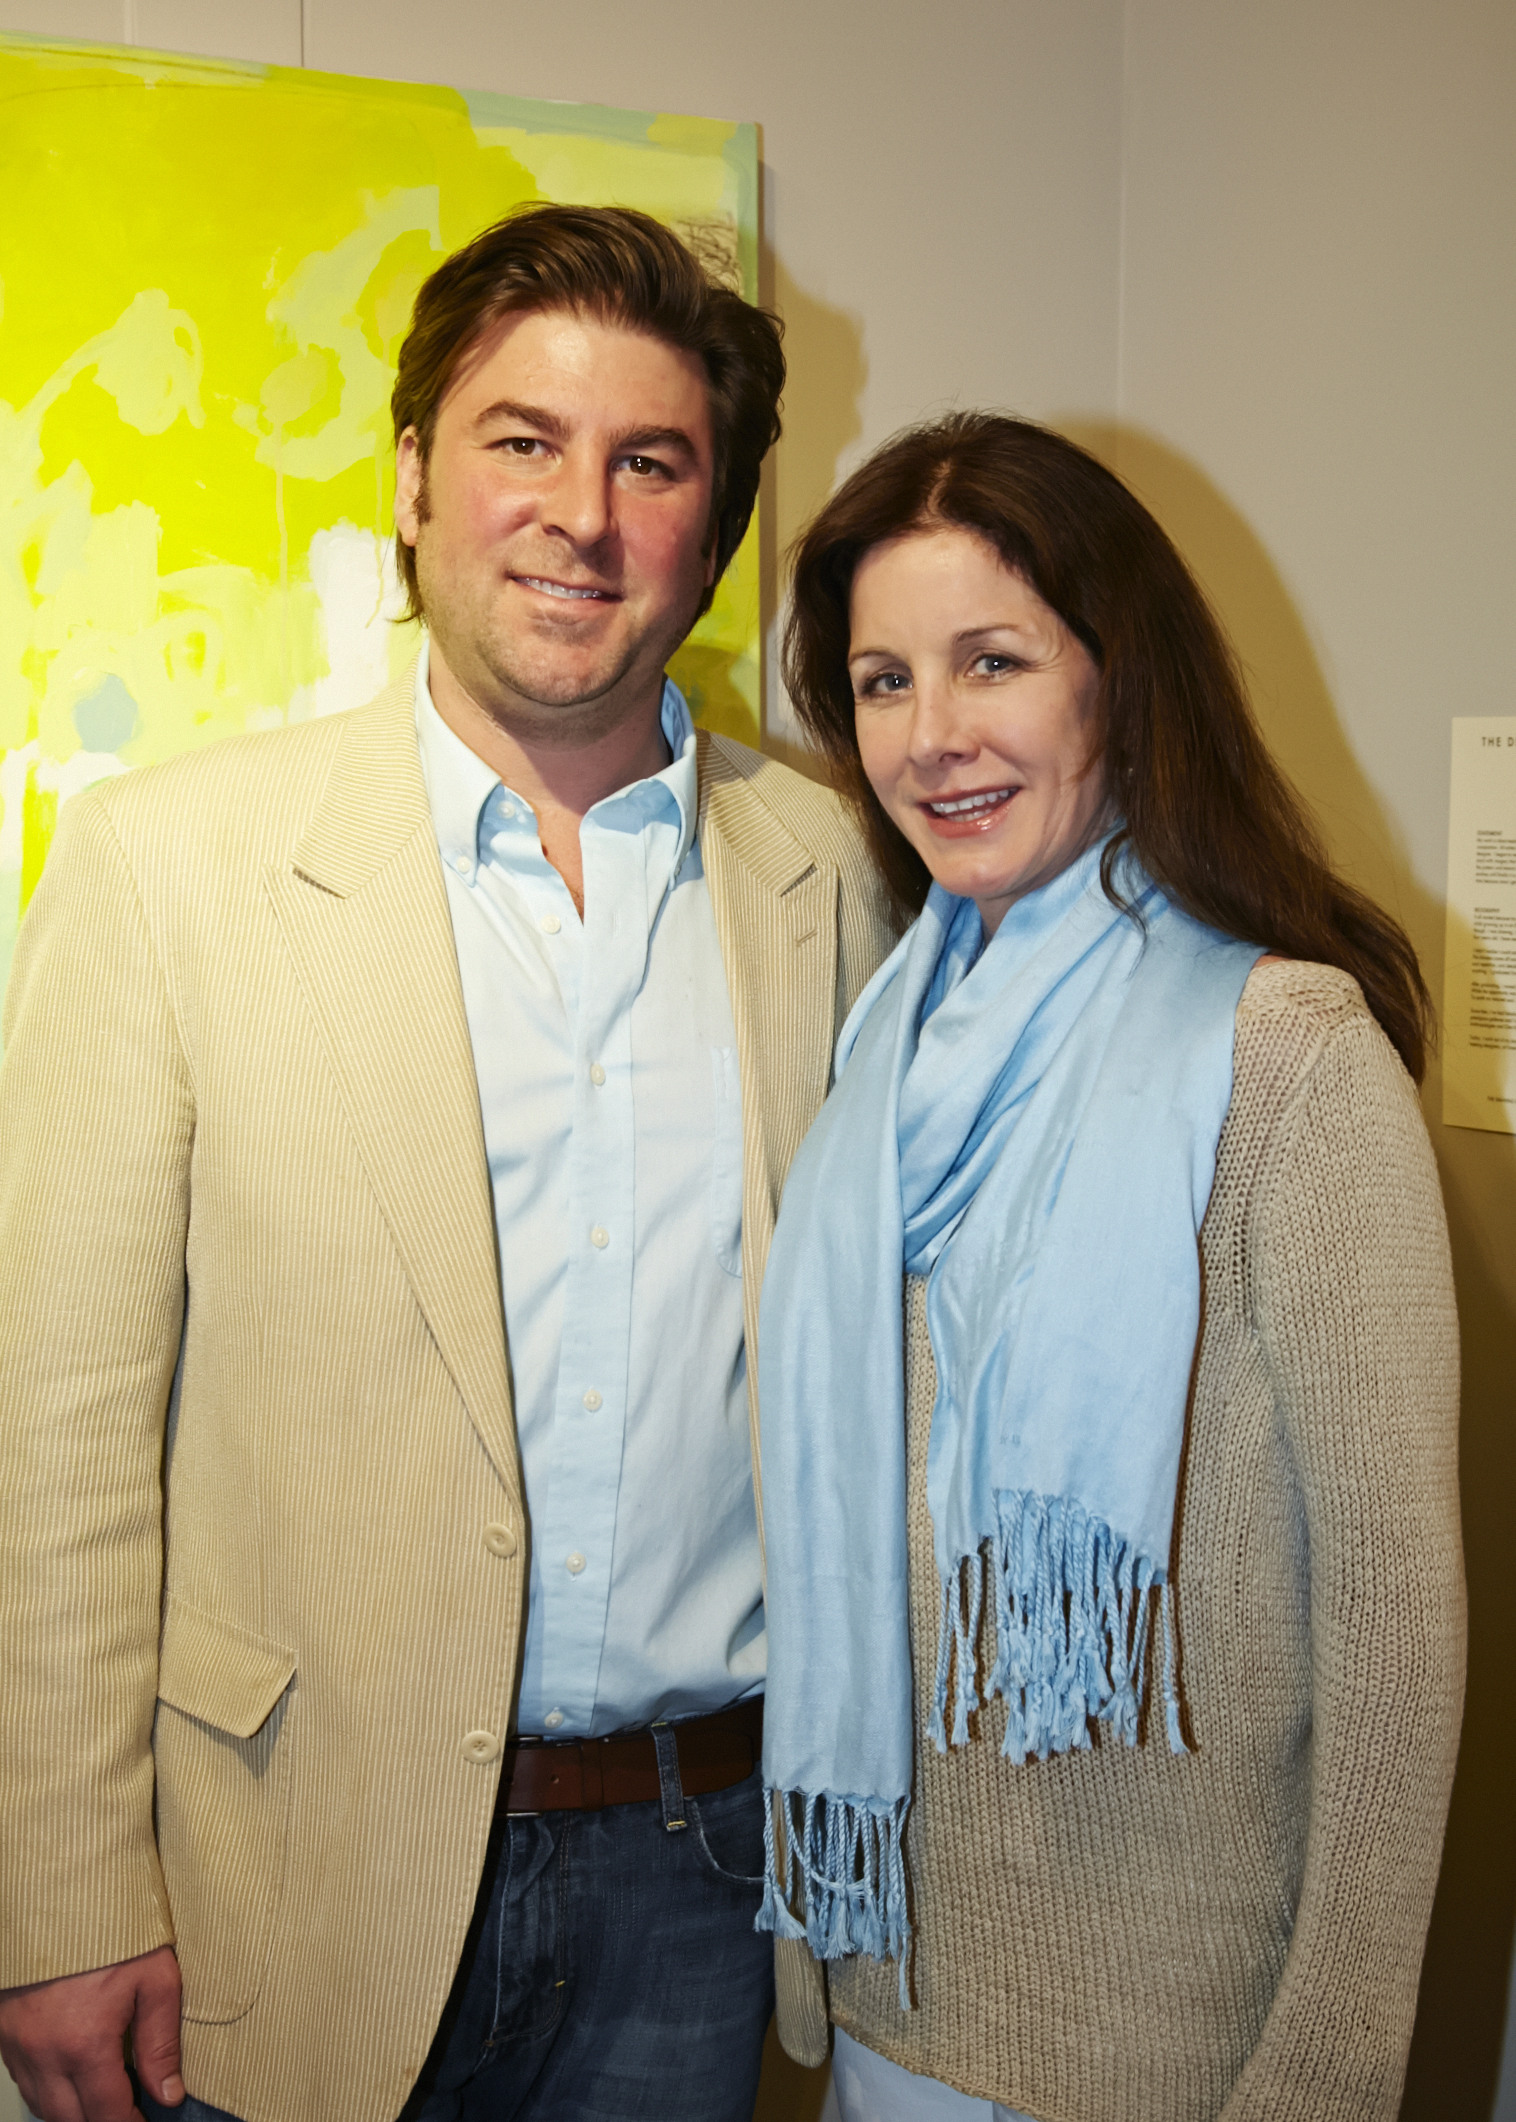 IMG_0092 Michael Larock and Maura Kinney.jpg